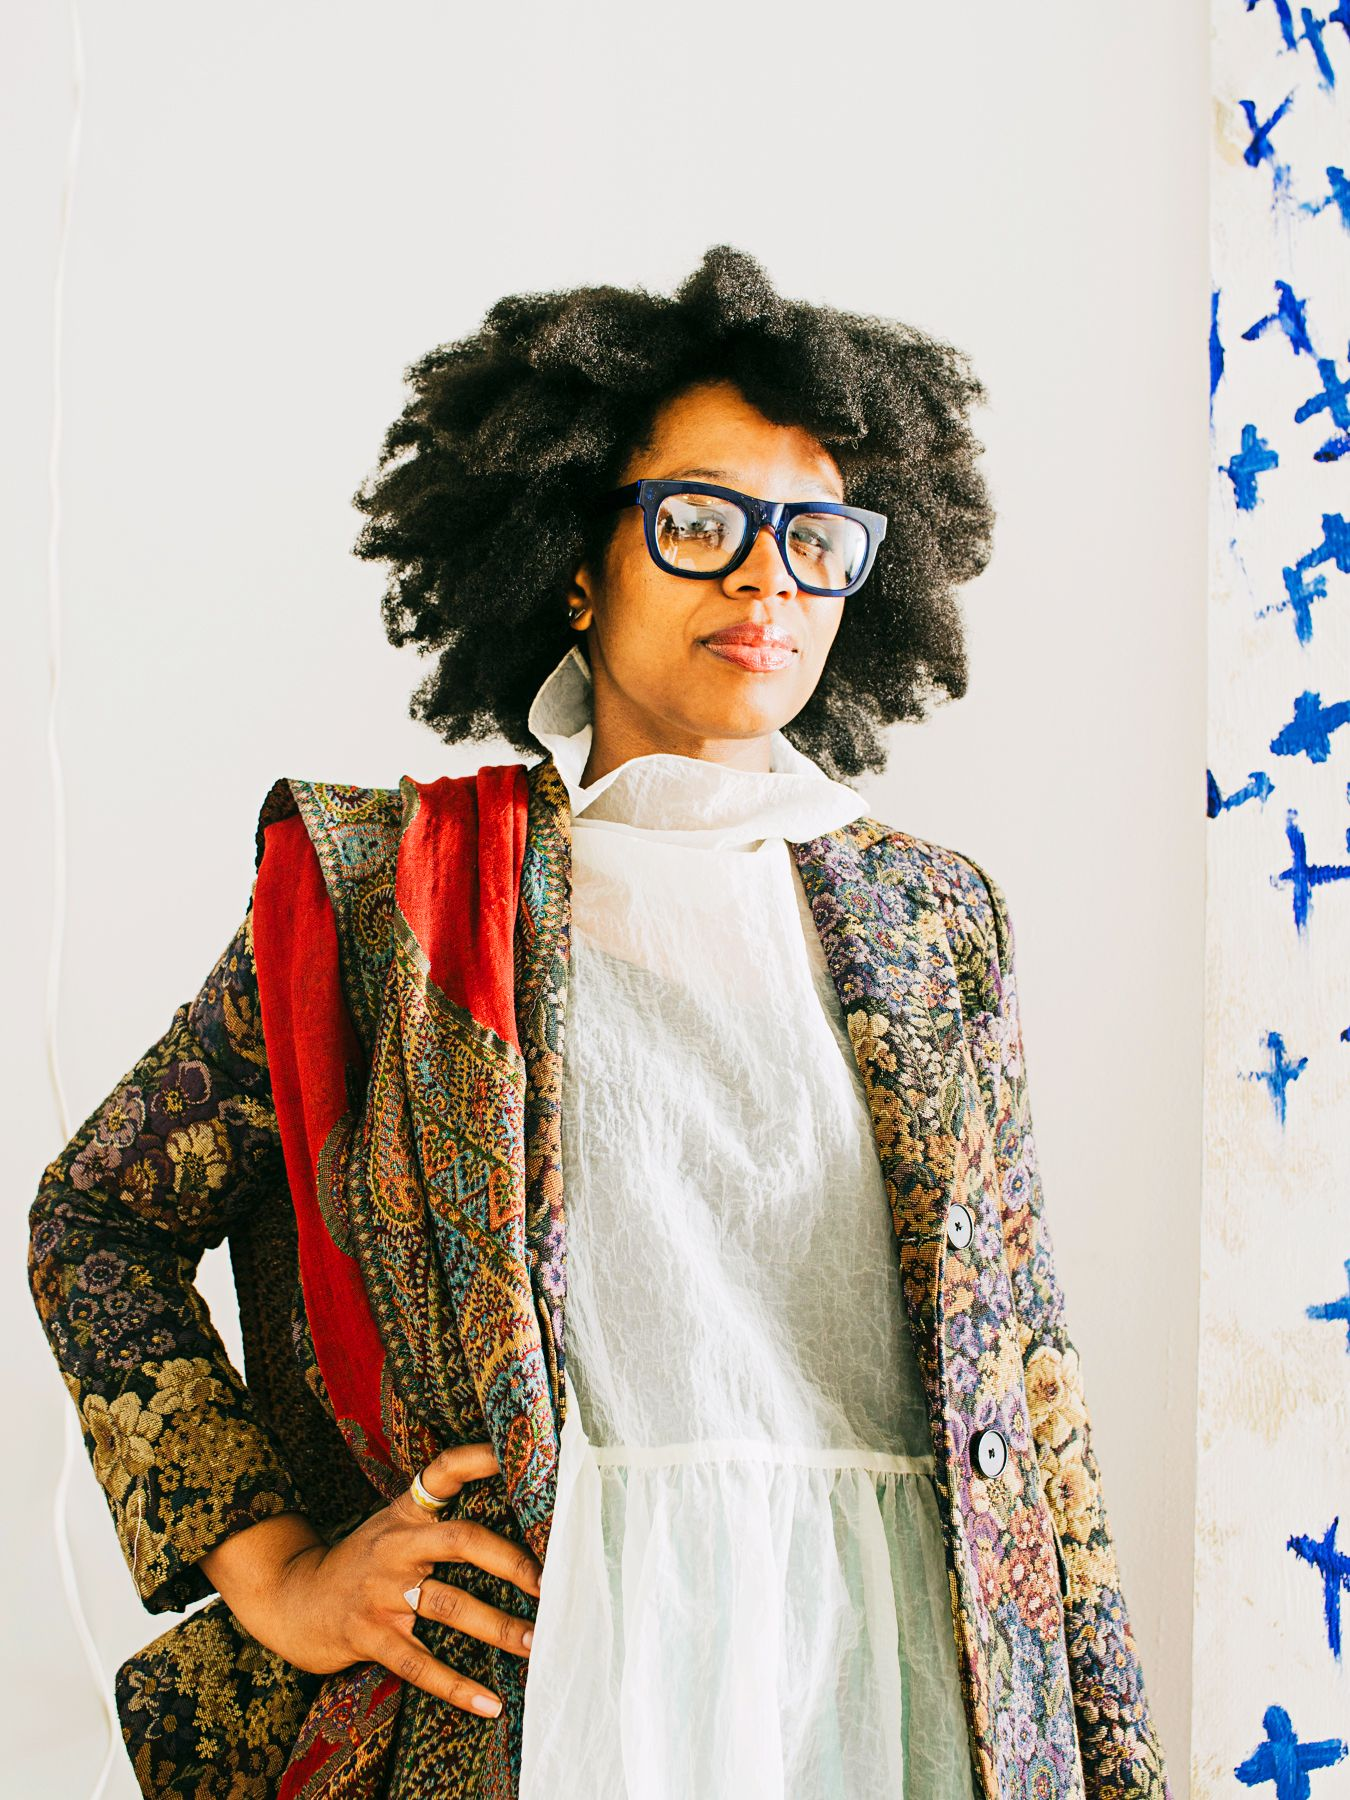 Artist Allison Janae Hamilton Brings Her Autobiographical Work to the Studio Museum in Harlem